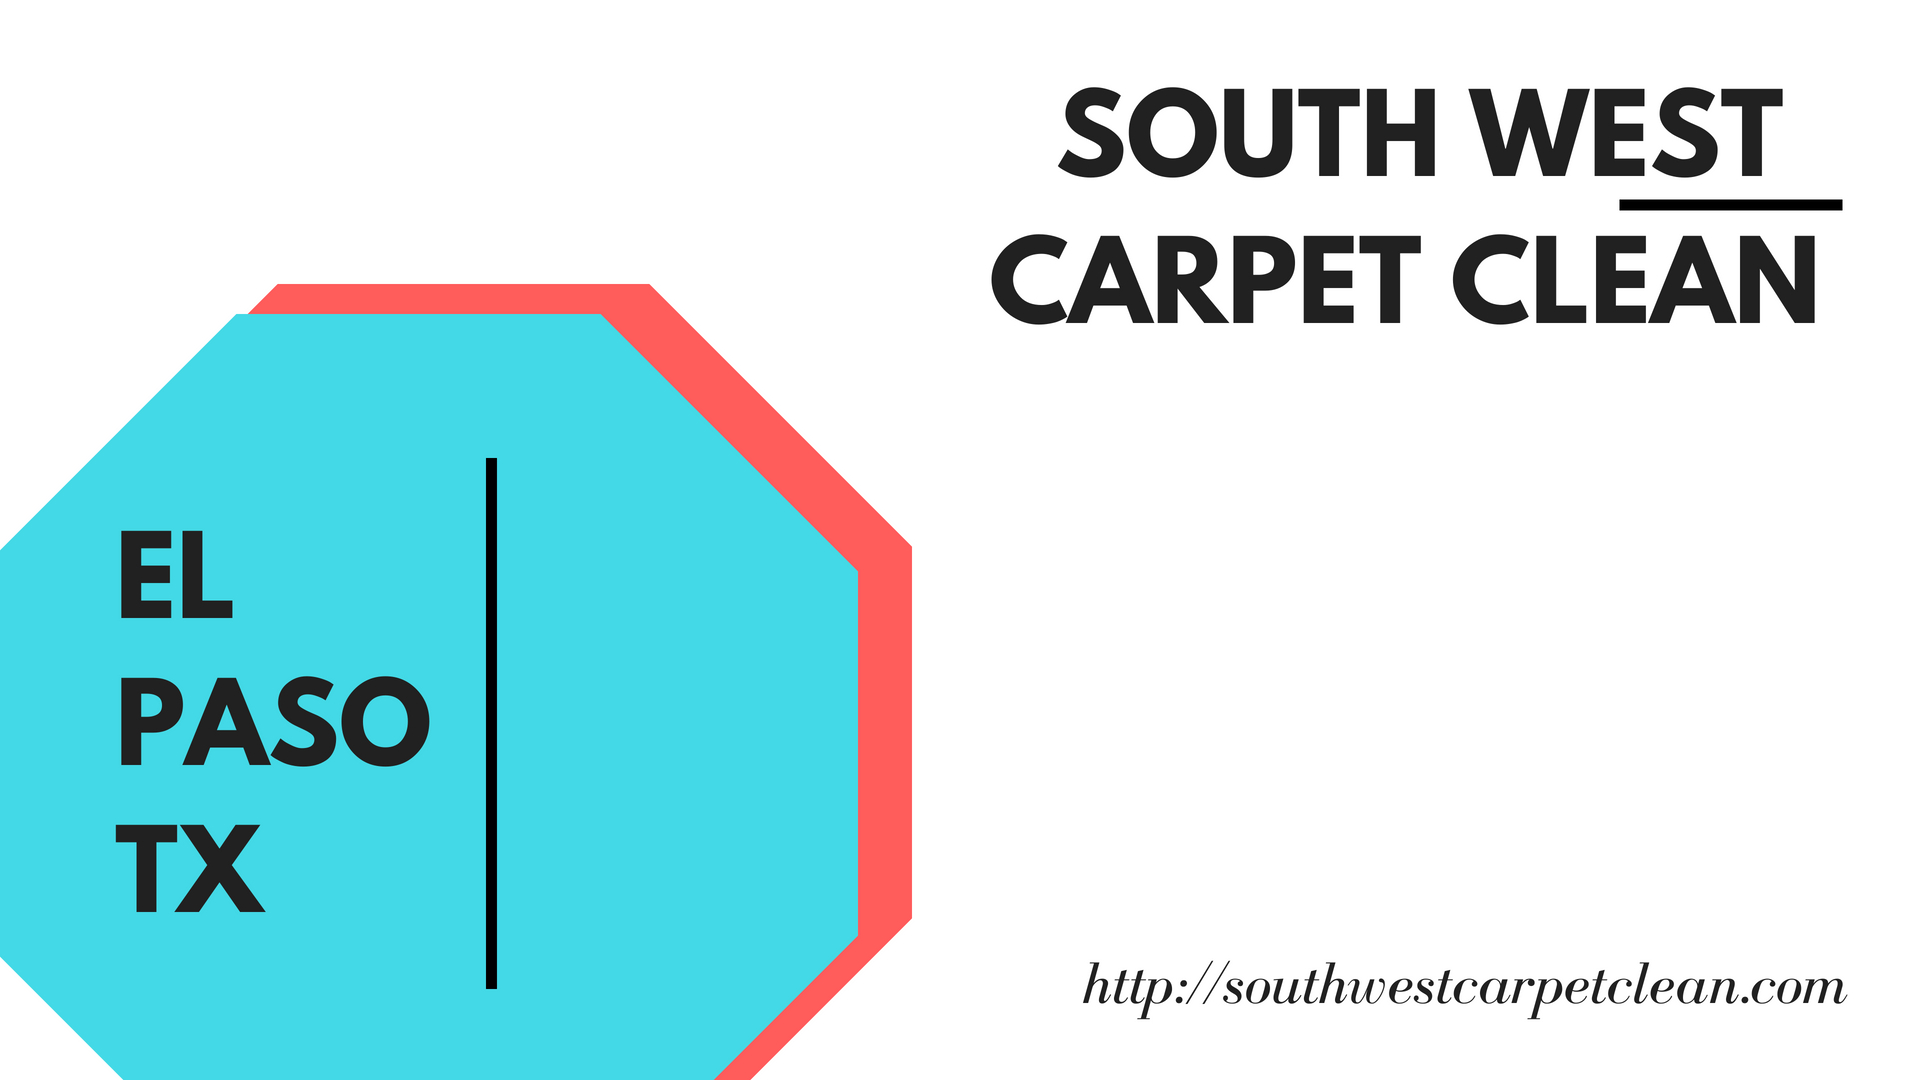 South West Carpet Clean